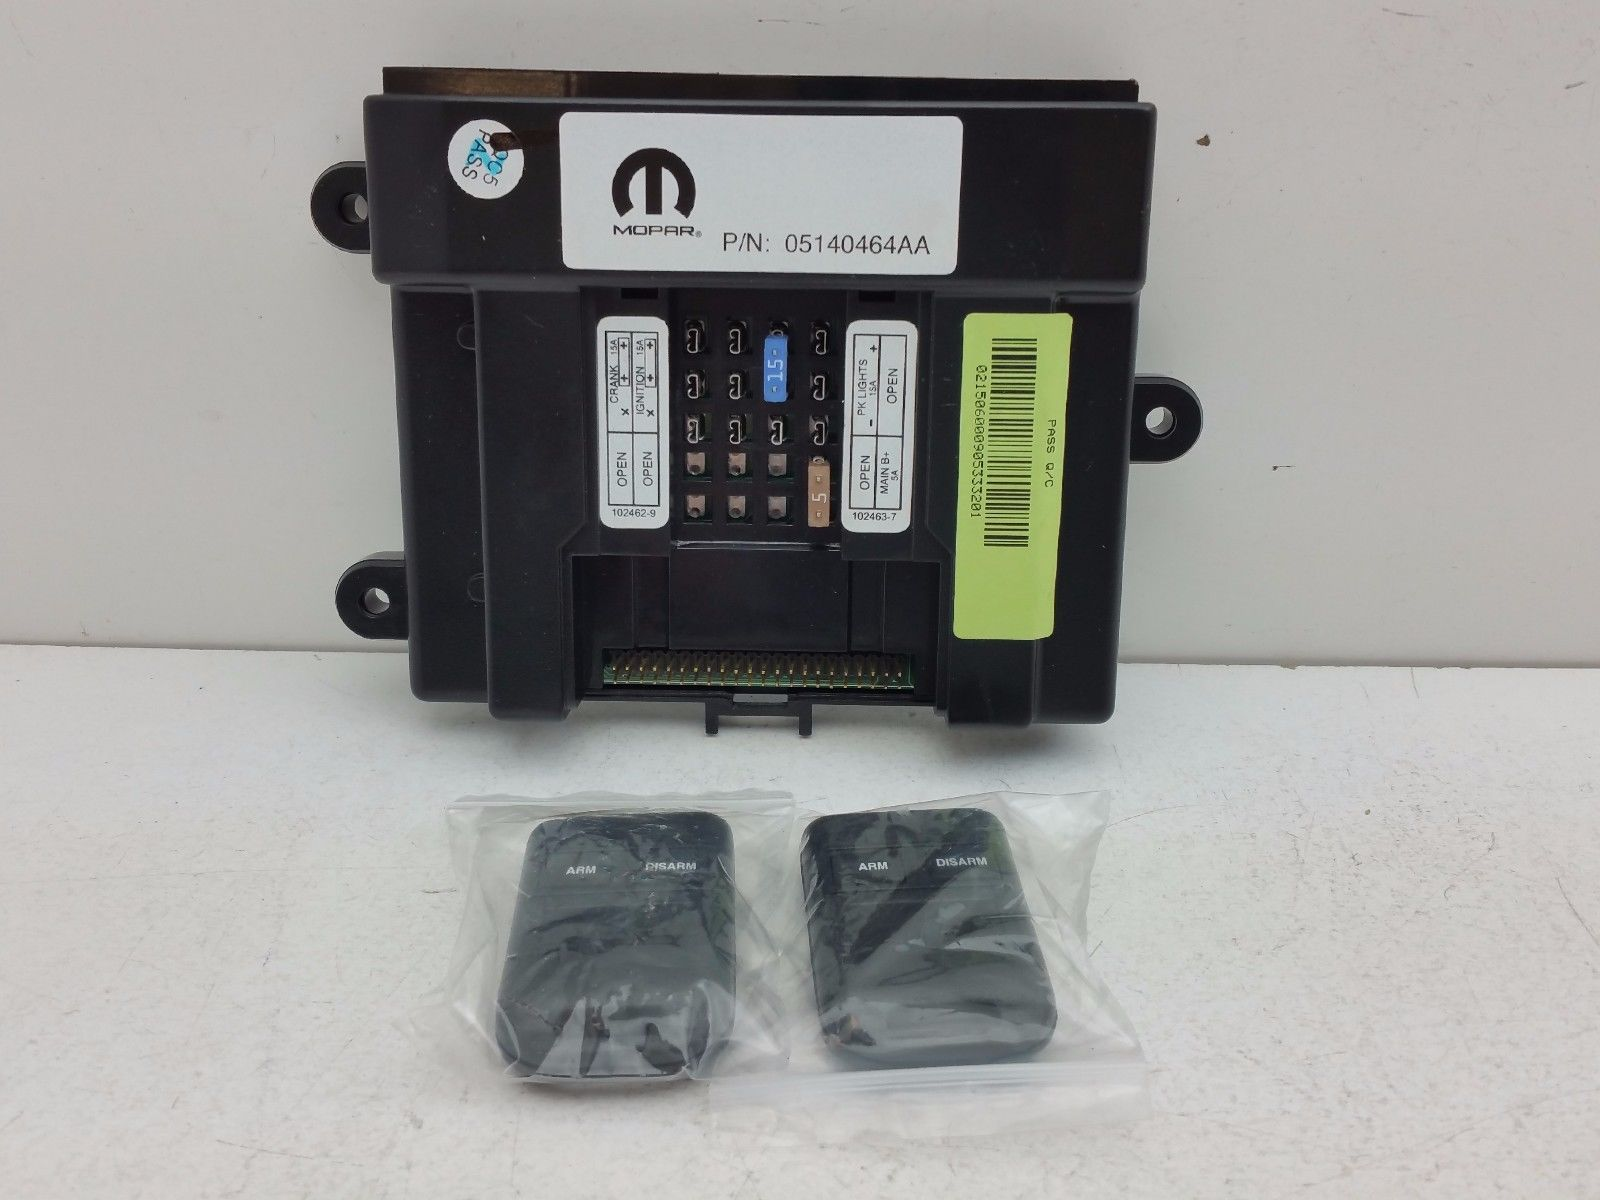 Mopar 05140464AA Alarm Control Module Security System 1-82209717 W/ REMOTES Does not apply FA-003